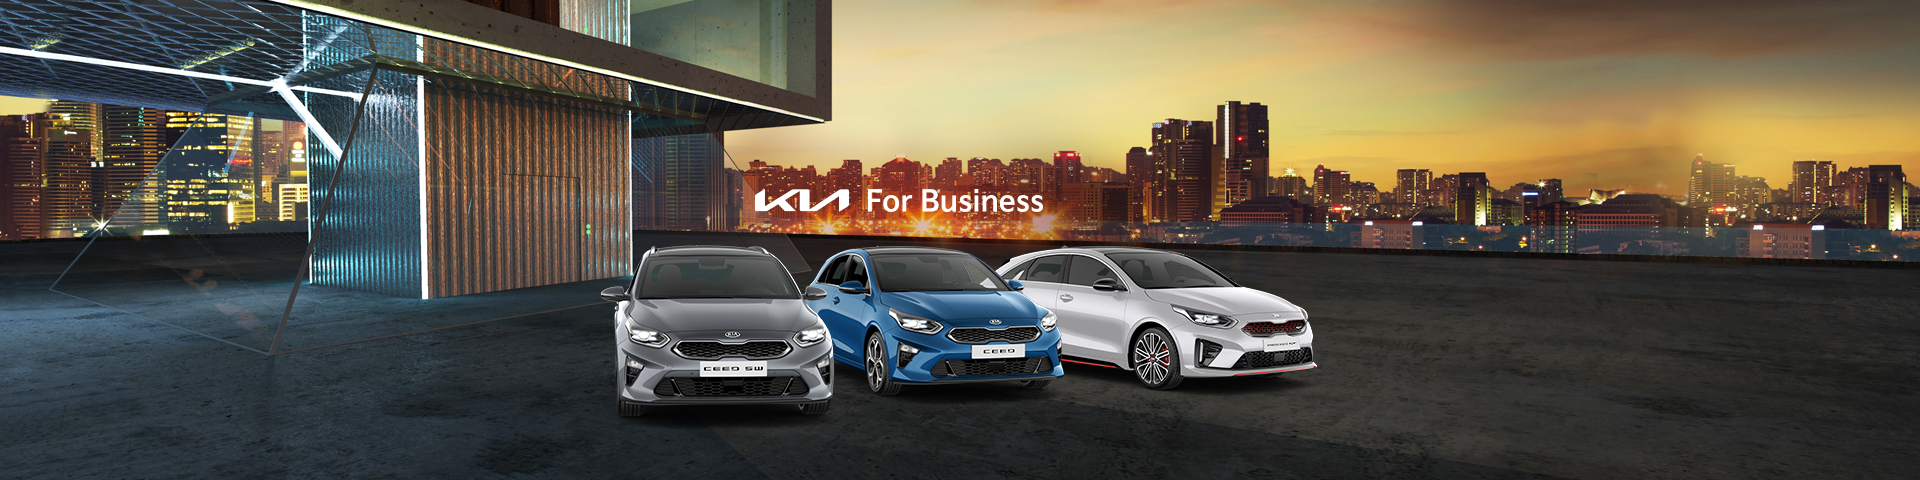 Kia For Business